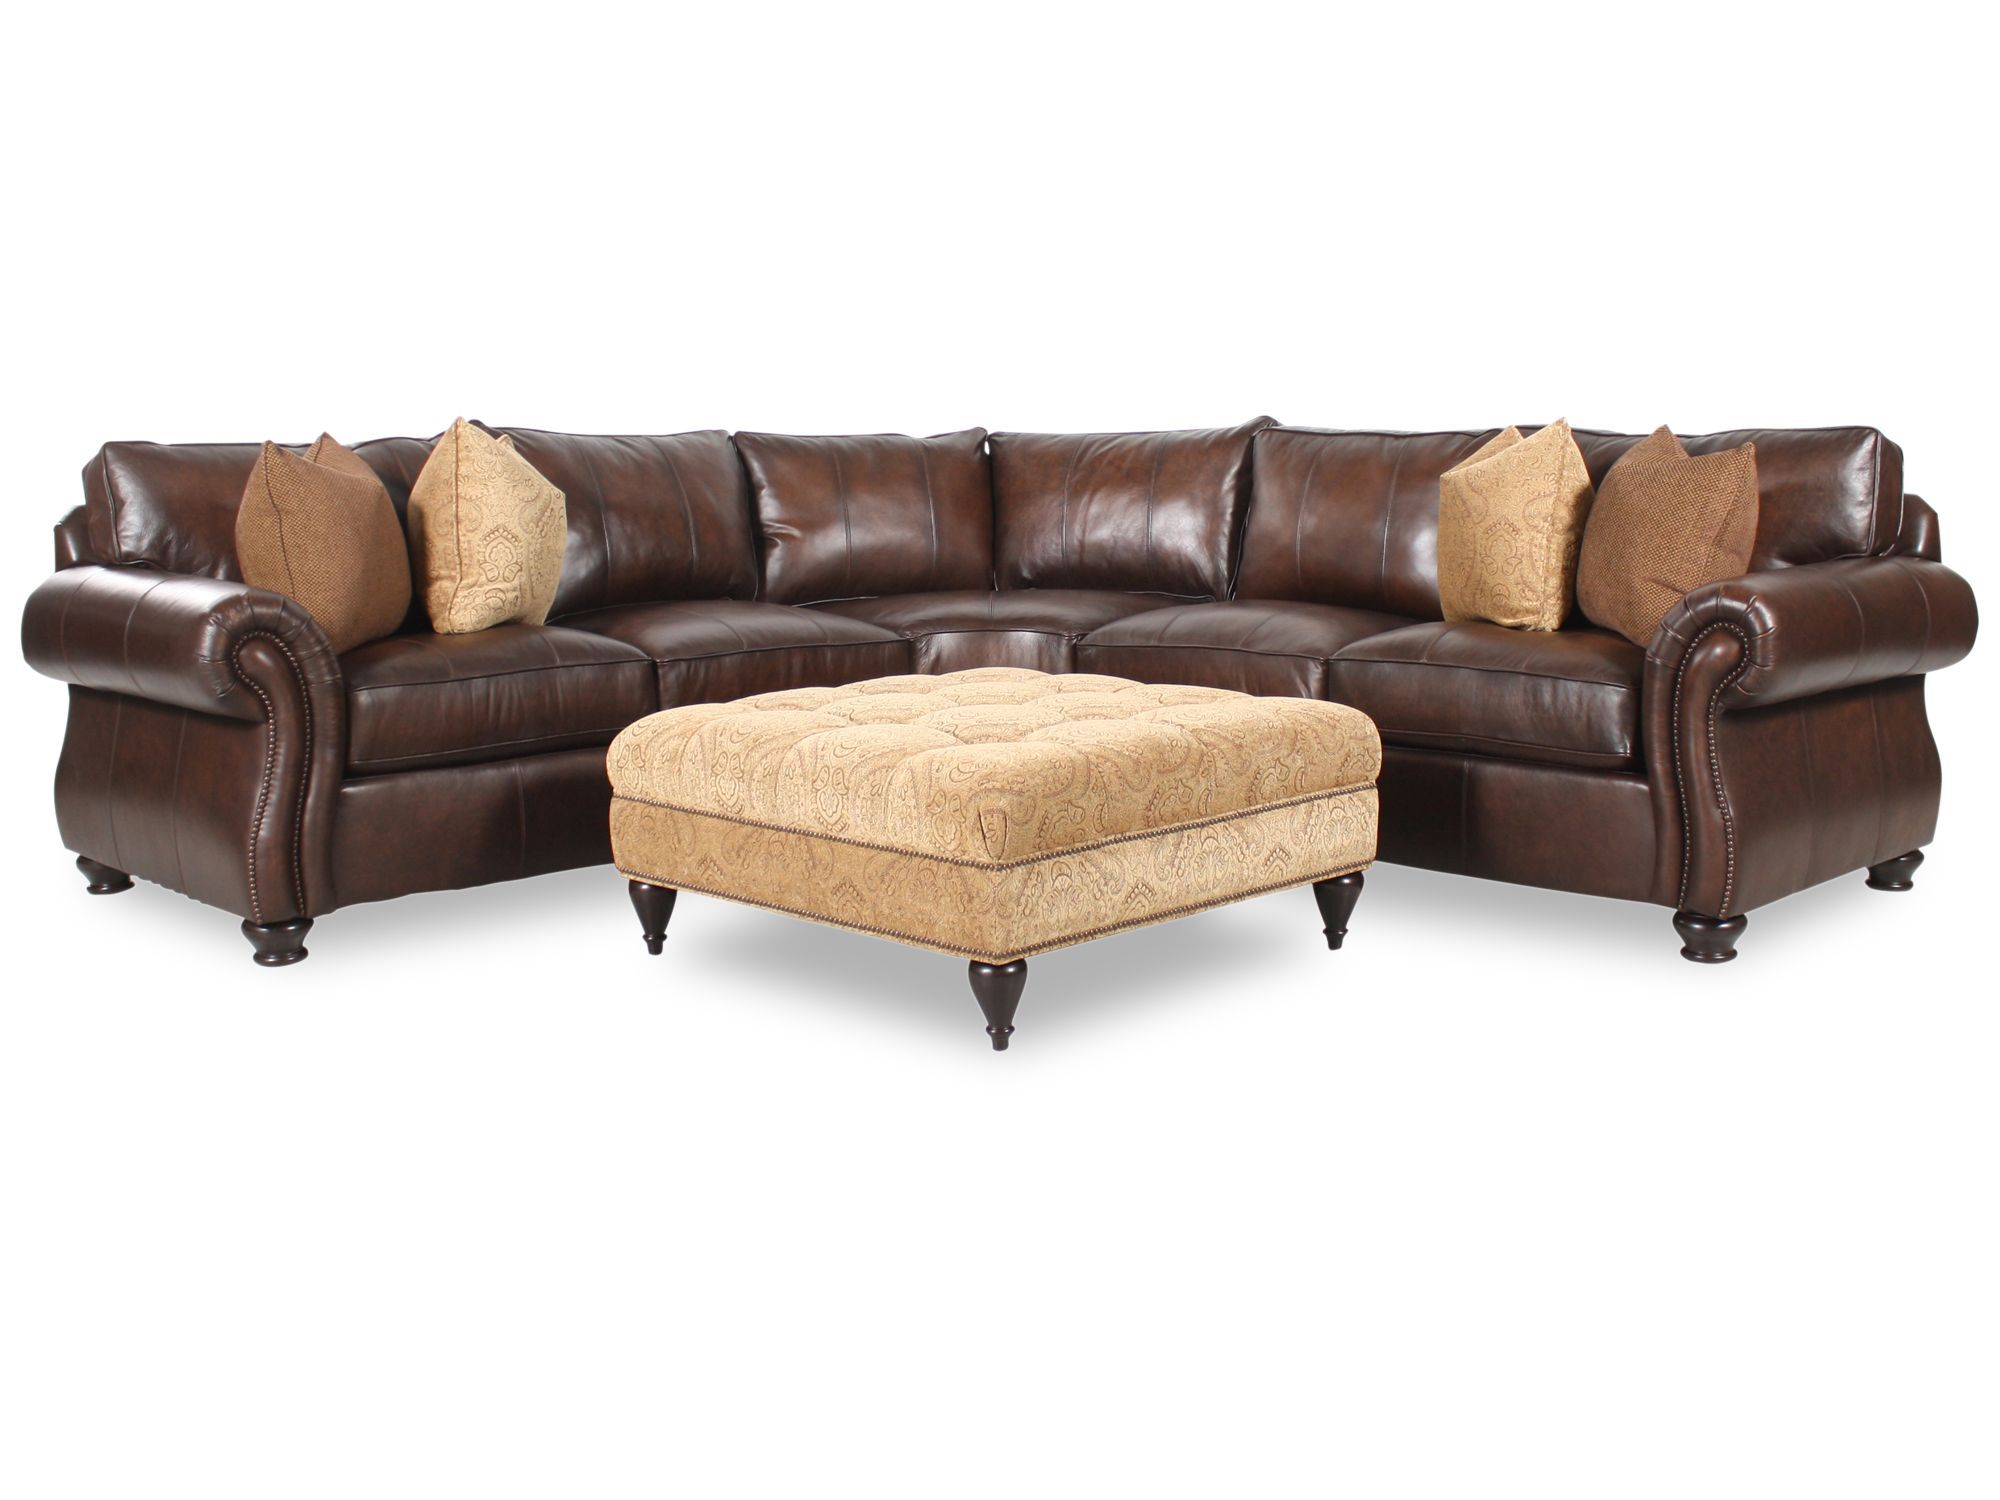 Bernhardt sectional leather sofa sectionals bernhardt for Bernhardt furniture